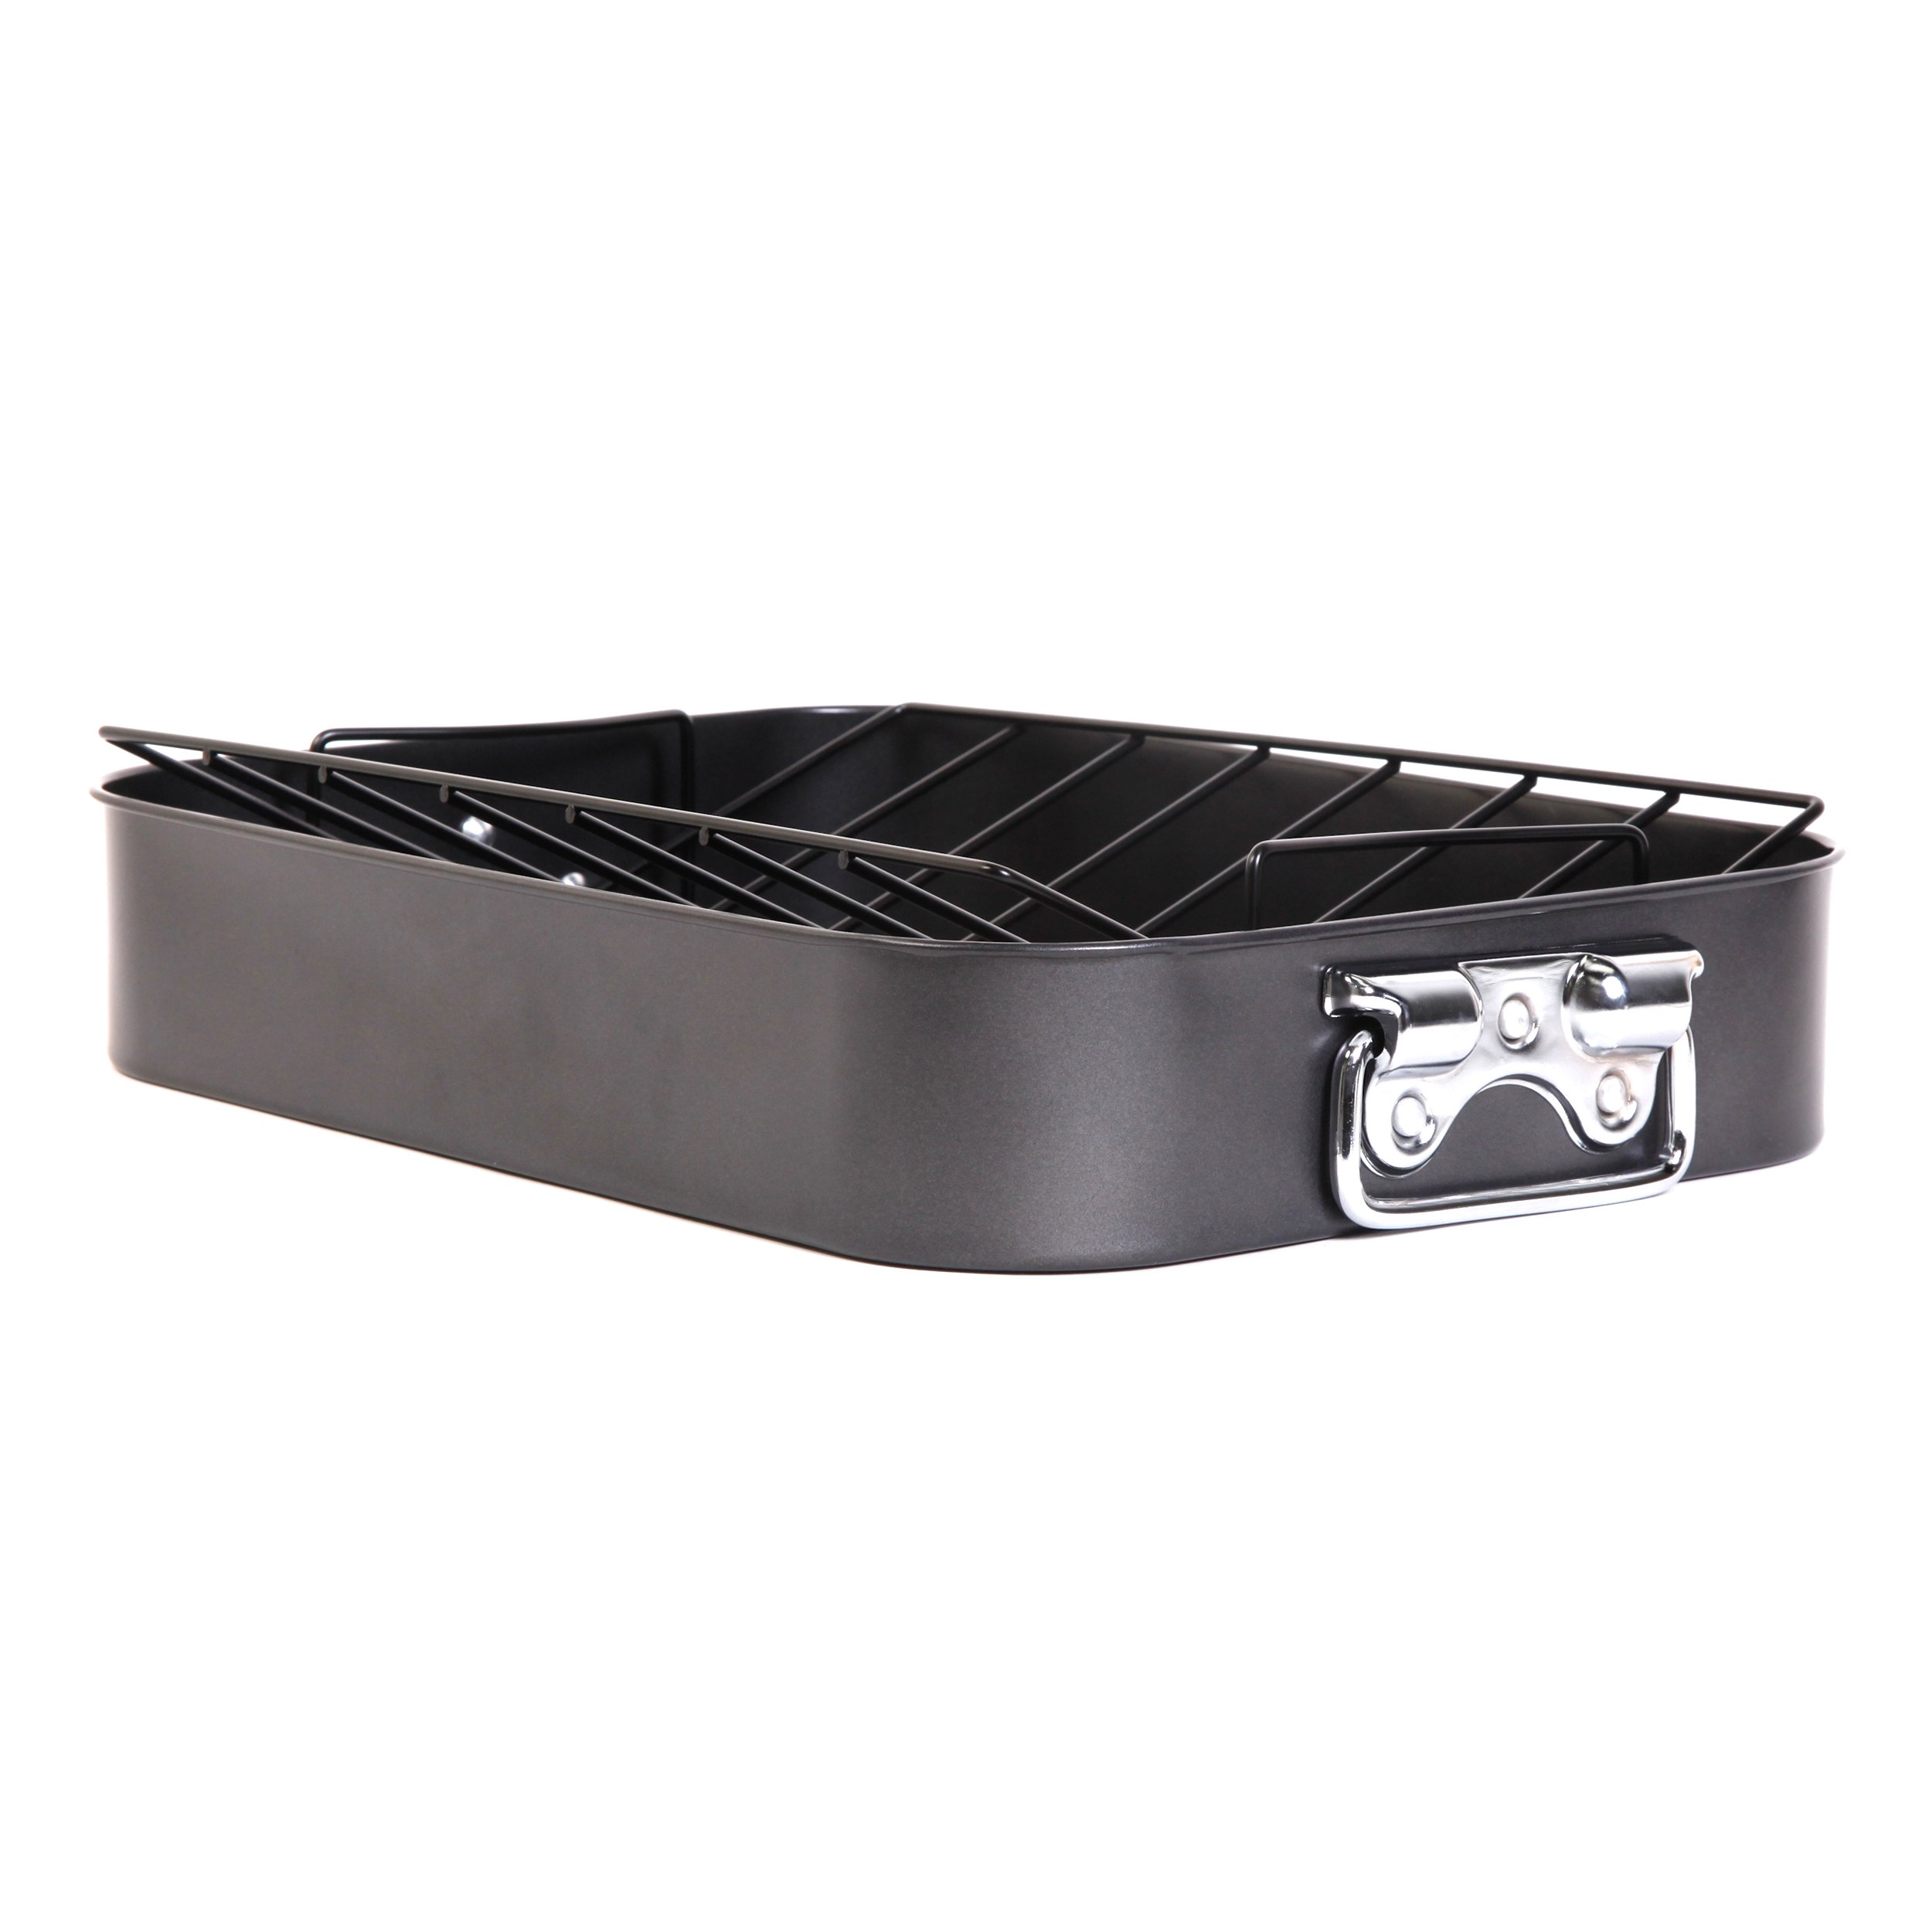 Gibson Home 63665.02 Top Roast Non-Stick Roaster with Rack, Black